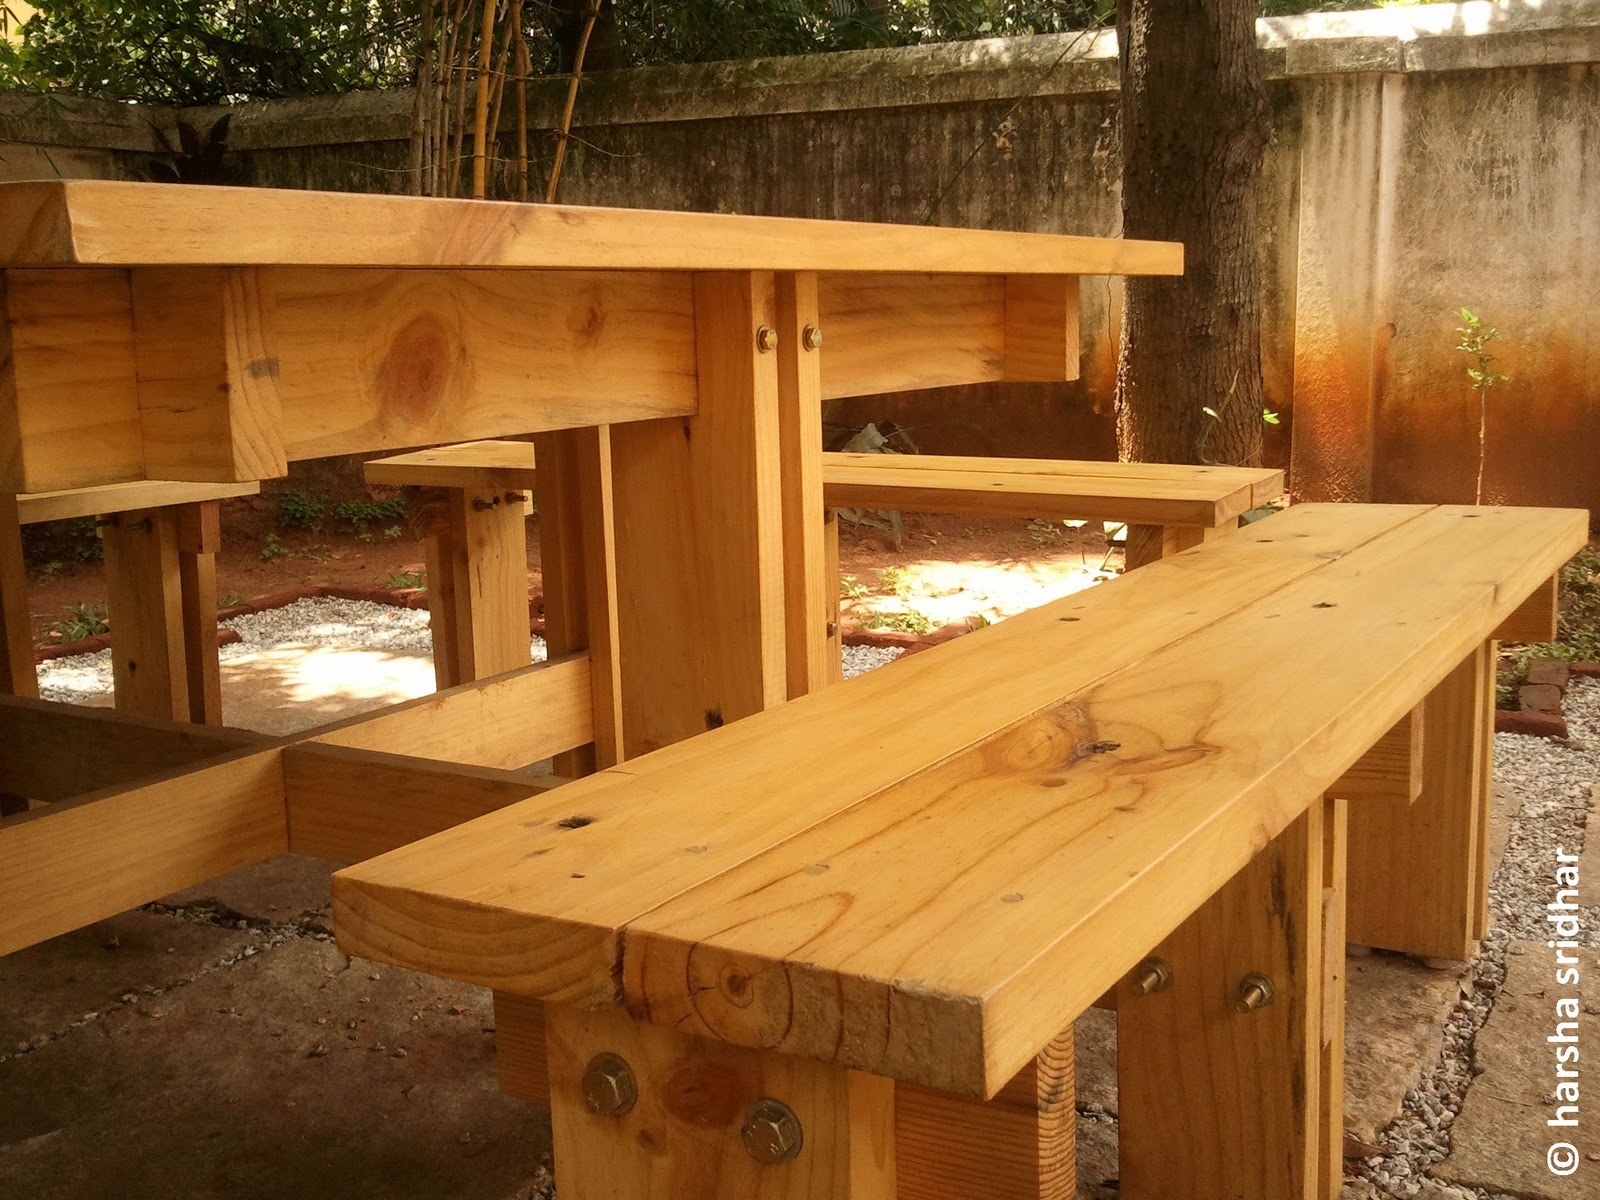 Initiative for Green Habitats: From used packaging wood to ...